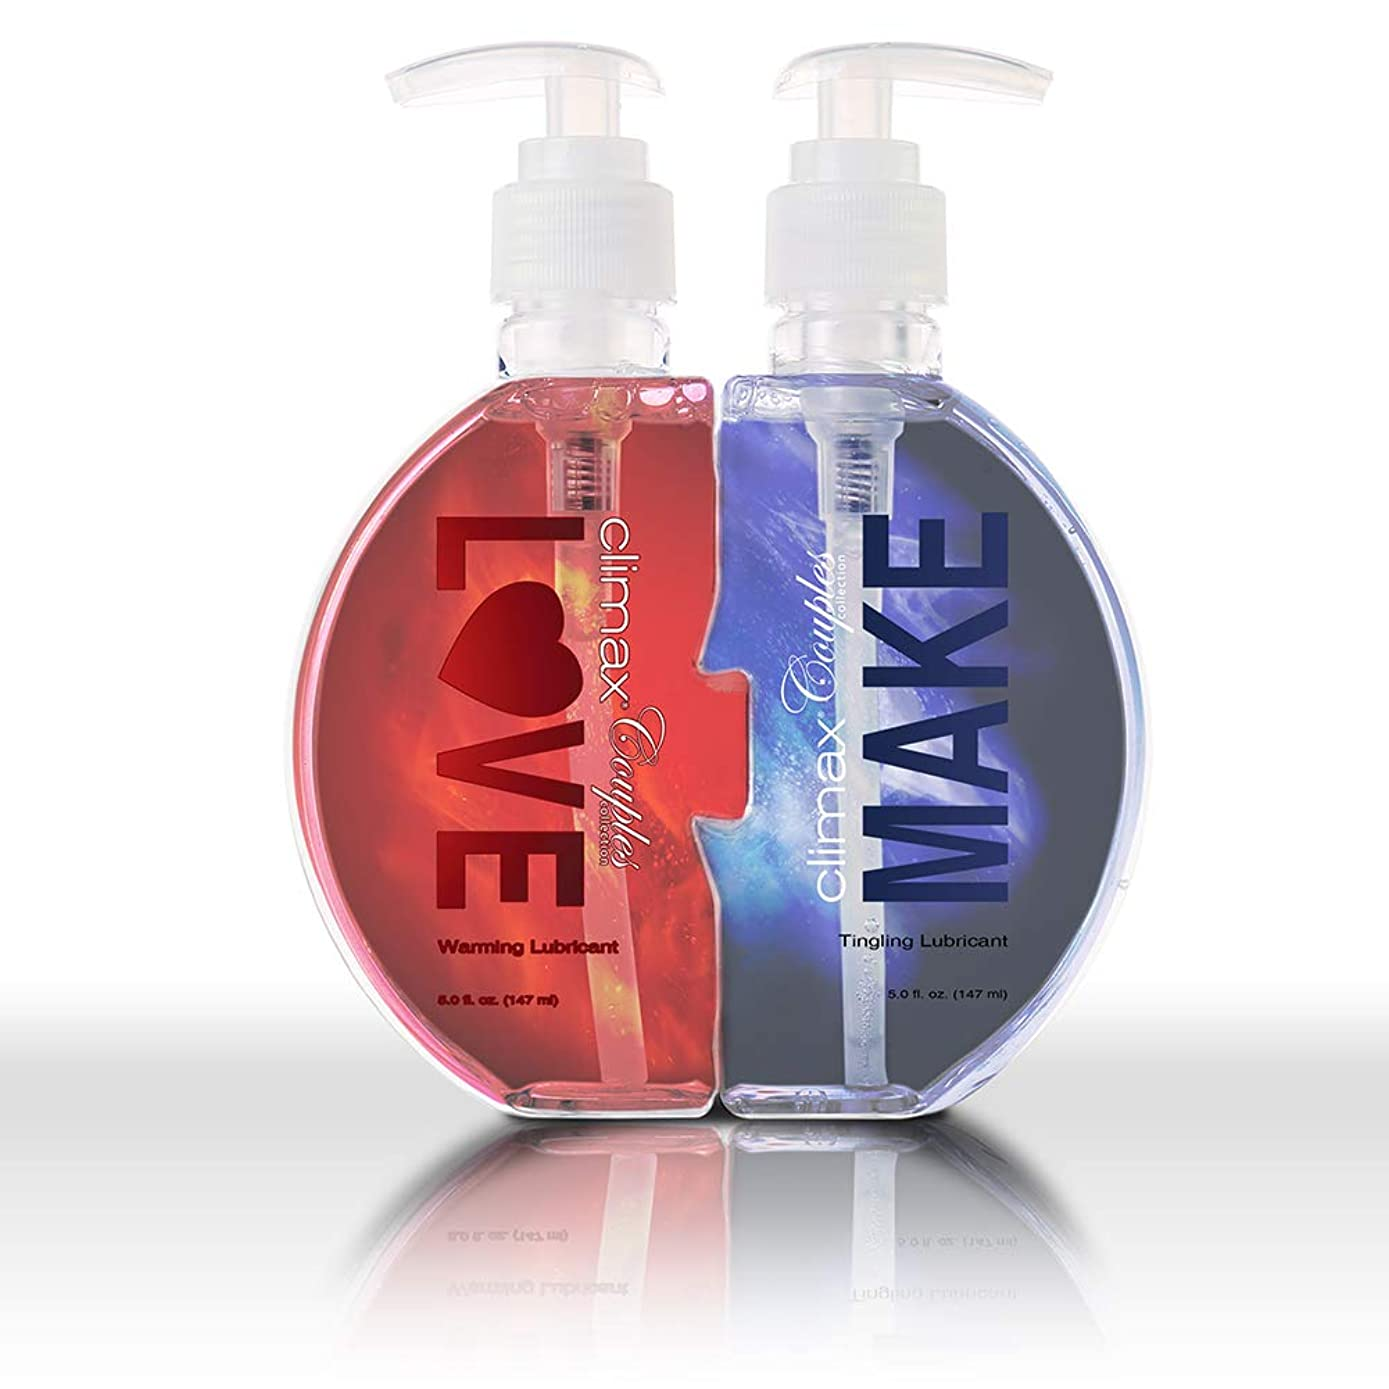 Climax Couples Warming & Tingling Personal Intimate Lubricant Water-Based Extreme Edition, 10 fl.oz. (in 2 Bottles), Heat for Men Tingle for Women, no Stain Easy to Clean, Discreet Packaging